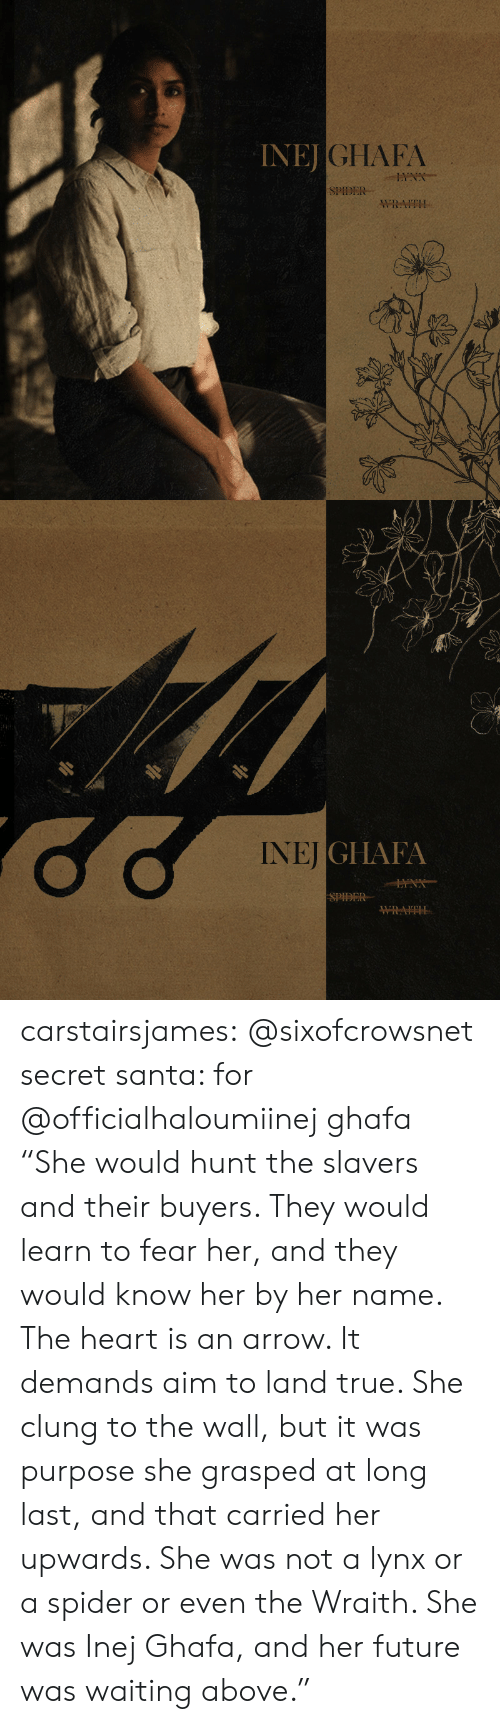 """secret santa: INEJ  JGHAFA  SPIDER  WRAITH   NEİGI IAIA  SPIDER carstairsjames:   @sixofcrowsnet secret santa: for @officialhaloumiinej ghafa   """"She would hunt the slavers and their buyers. They would learn to fear her, and they would know her by her name. The heart is an arrow. It demands aim to land true. She clung to the wall, but it was purpose she grasped at long last, and that carried her upwards. She was not a lynx or a spider or even the Wraith. She was Inej Ghafa, and her future was waiting above."""""""